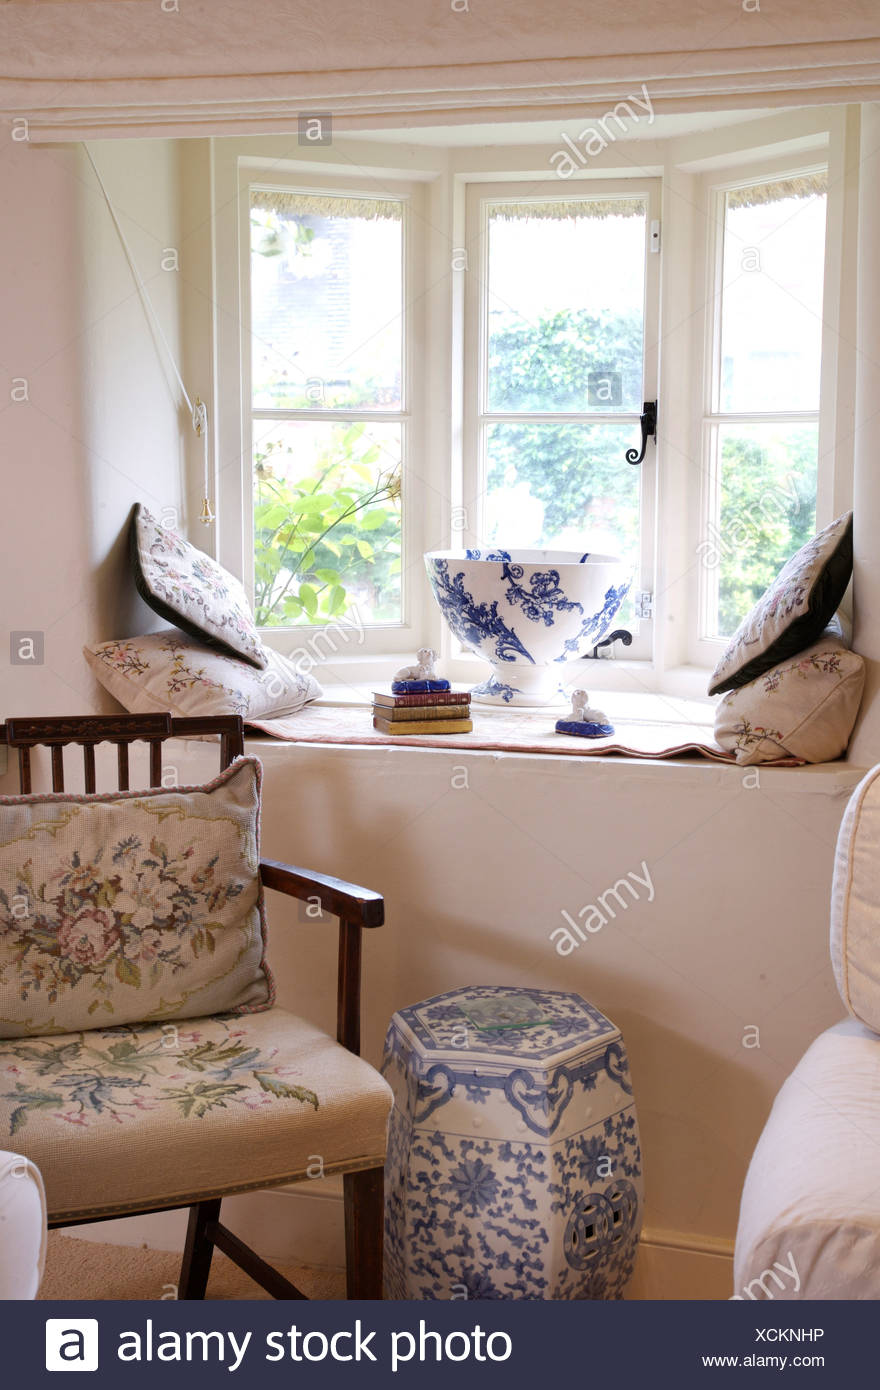 Hand Worked Tapestry Cushion And Seat On Wooden Chair Beside Chinese Blue White Porcelain Stool Below Cottage Window Stock Photo Alamy